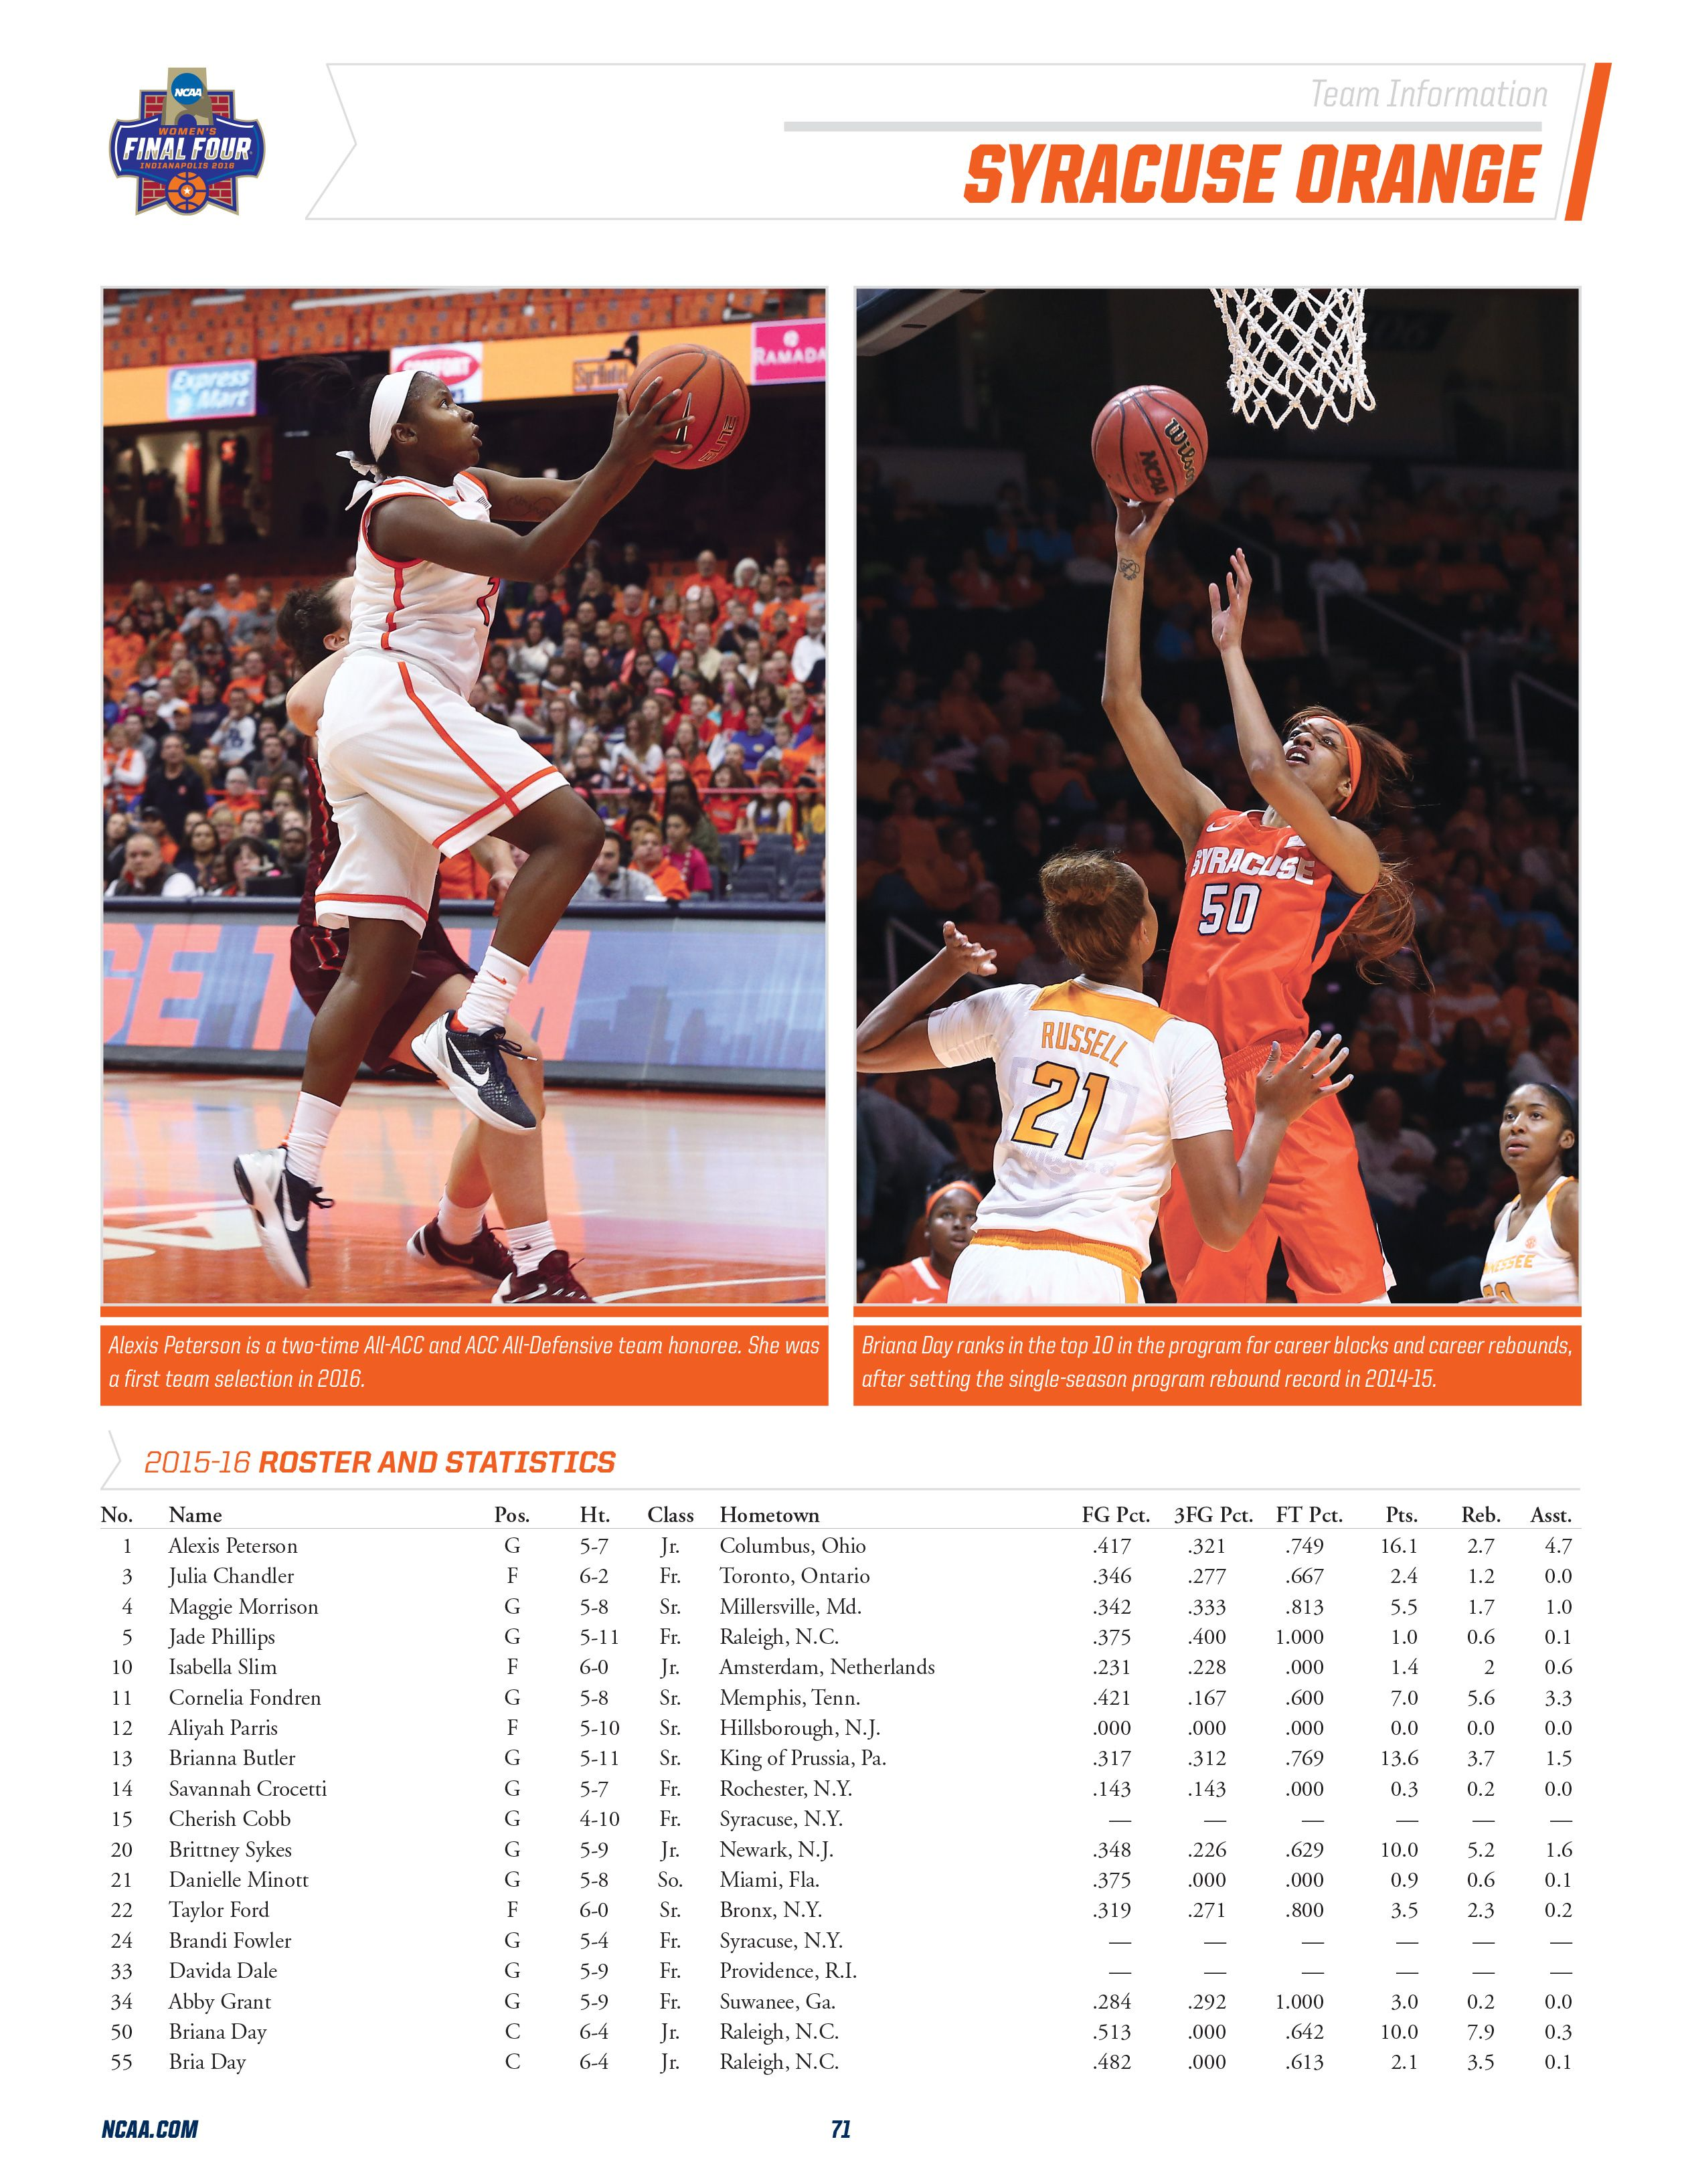 Take a look at one of the team pages for Syracuse Women's